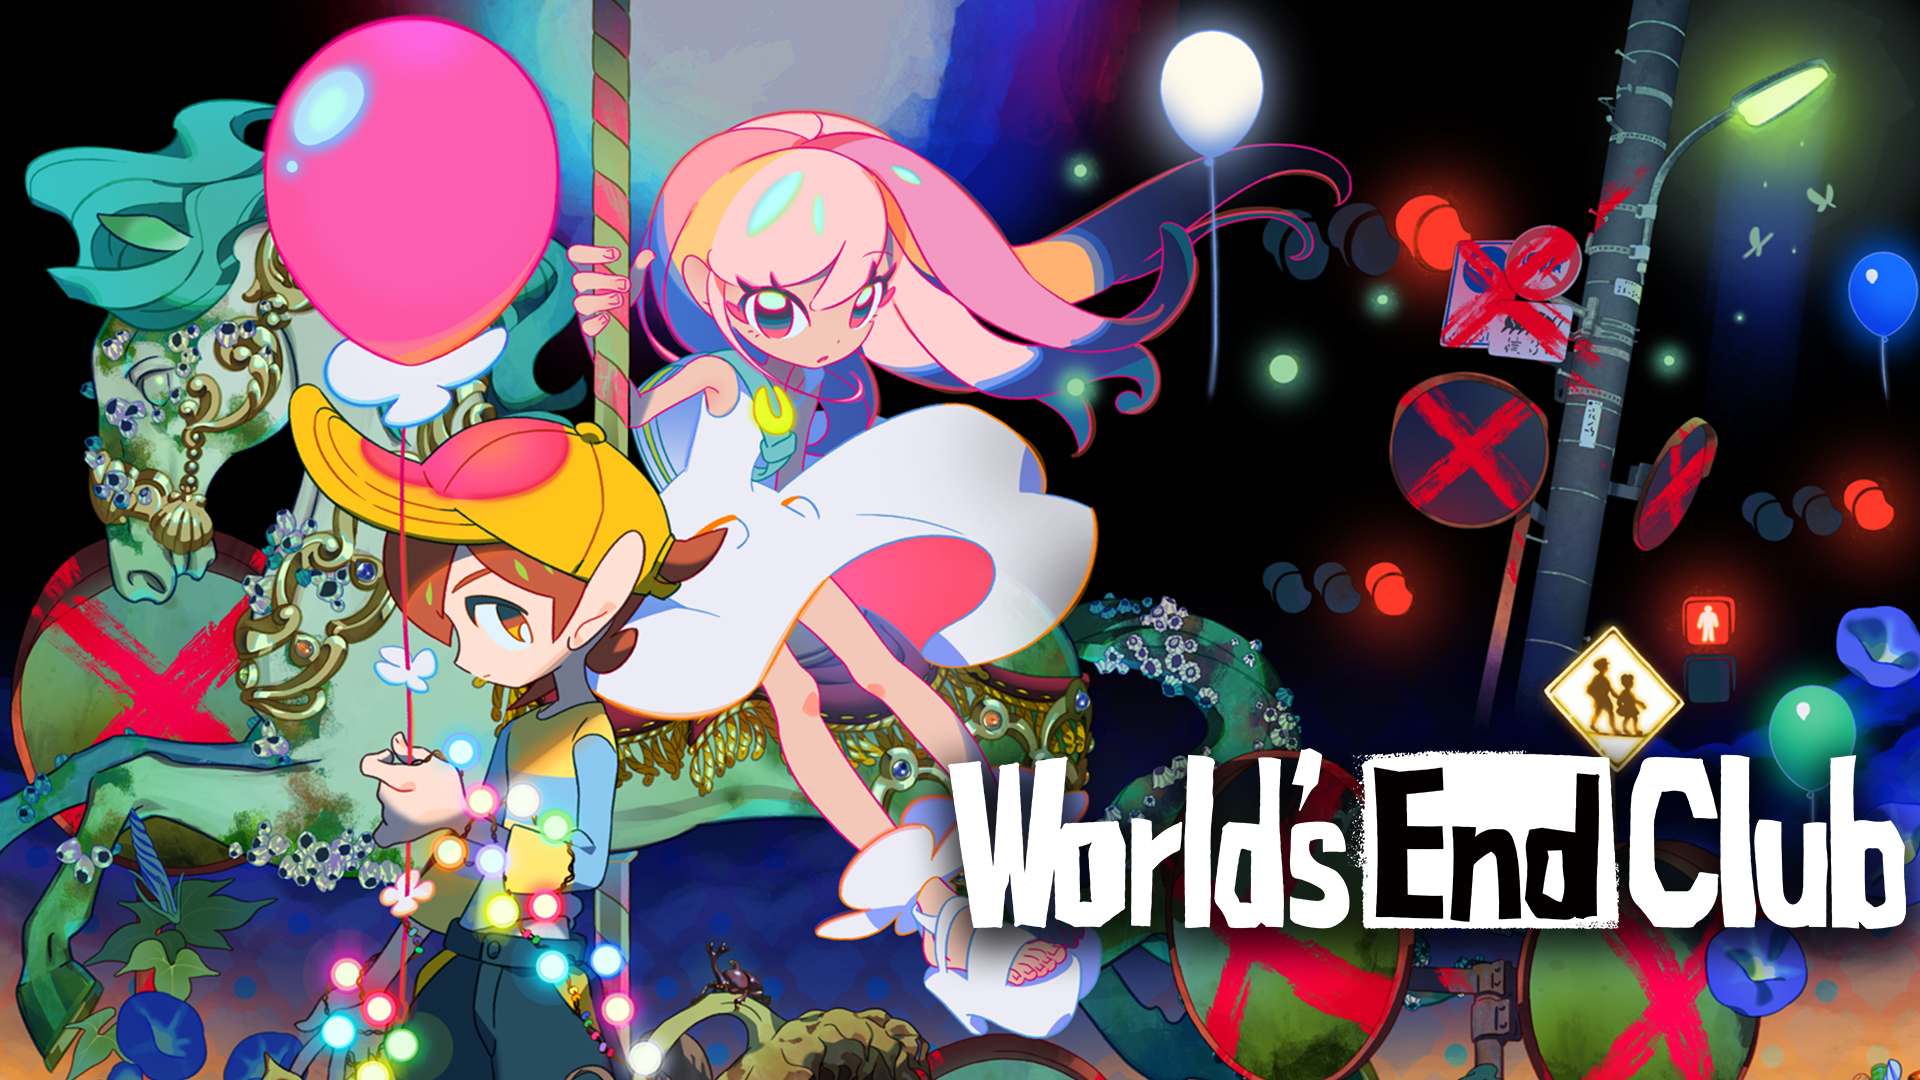 Games to Look Forward to In May 2021 - World's End